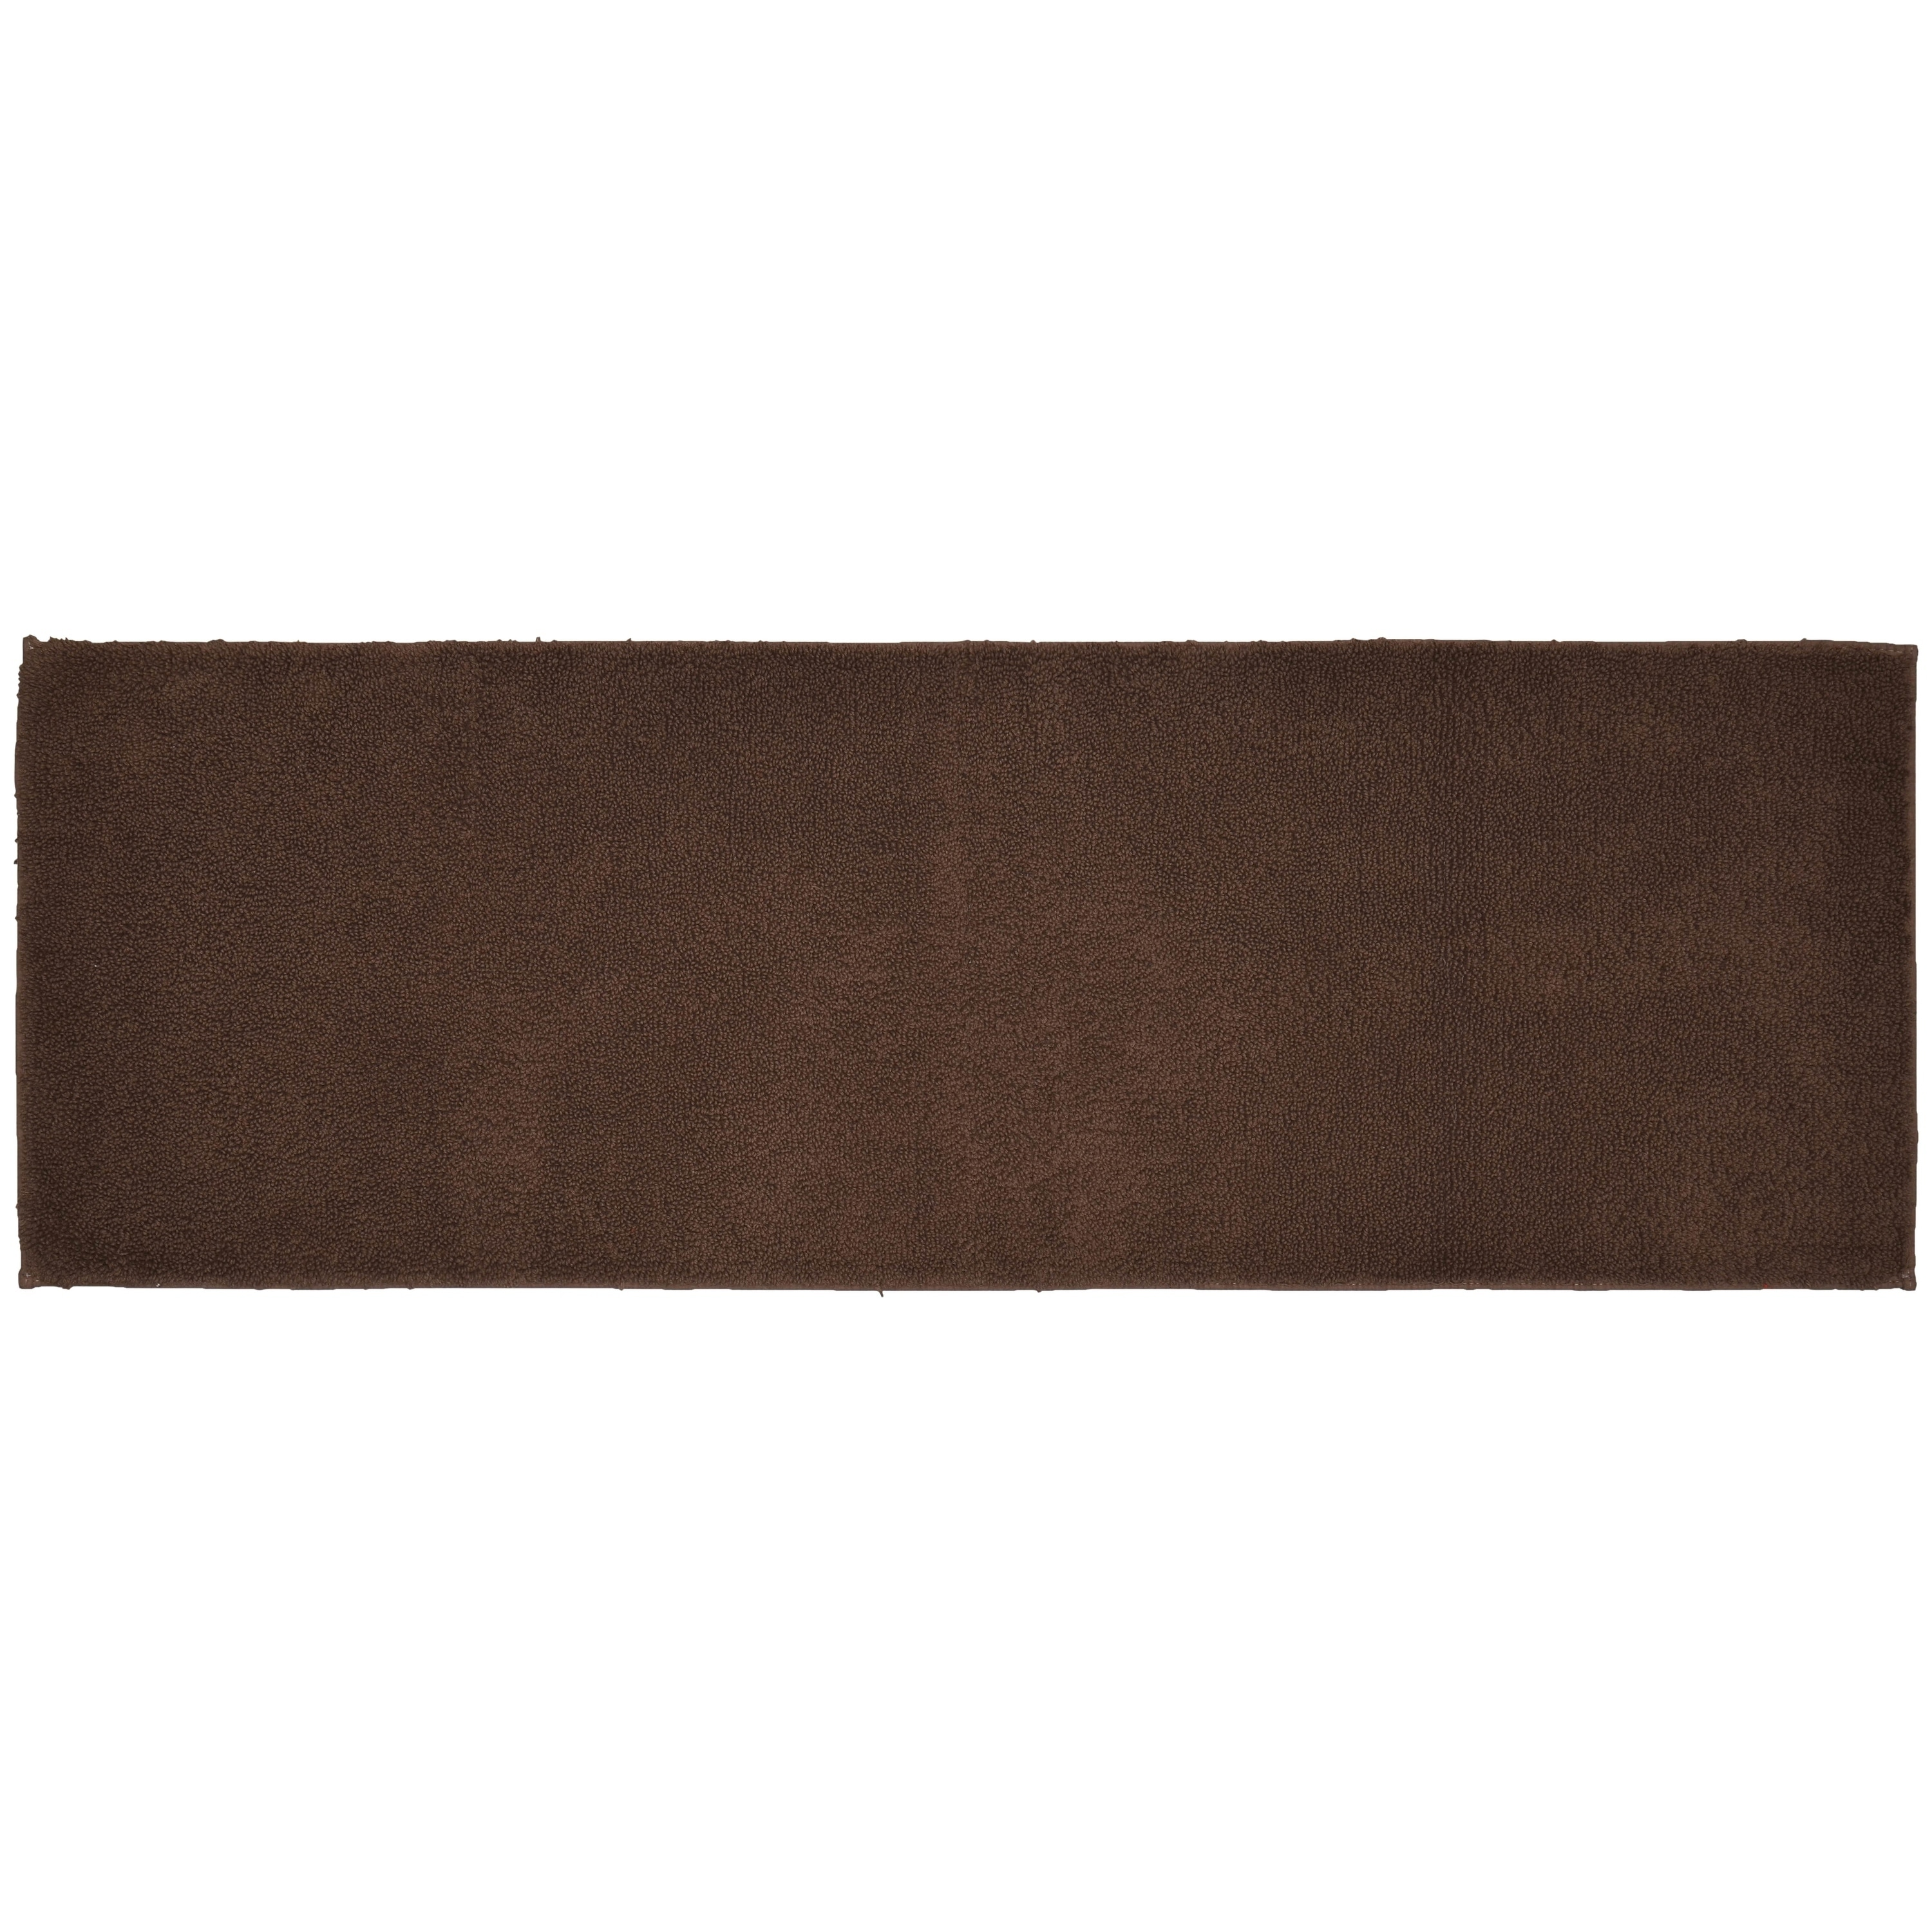 queen cotton chocolate washable bath rug runner